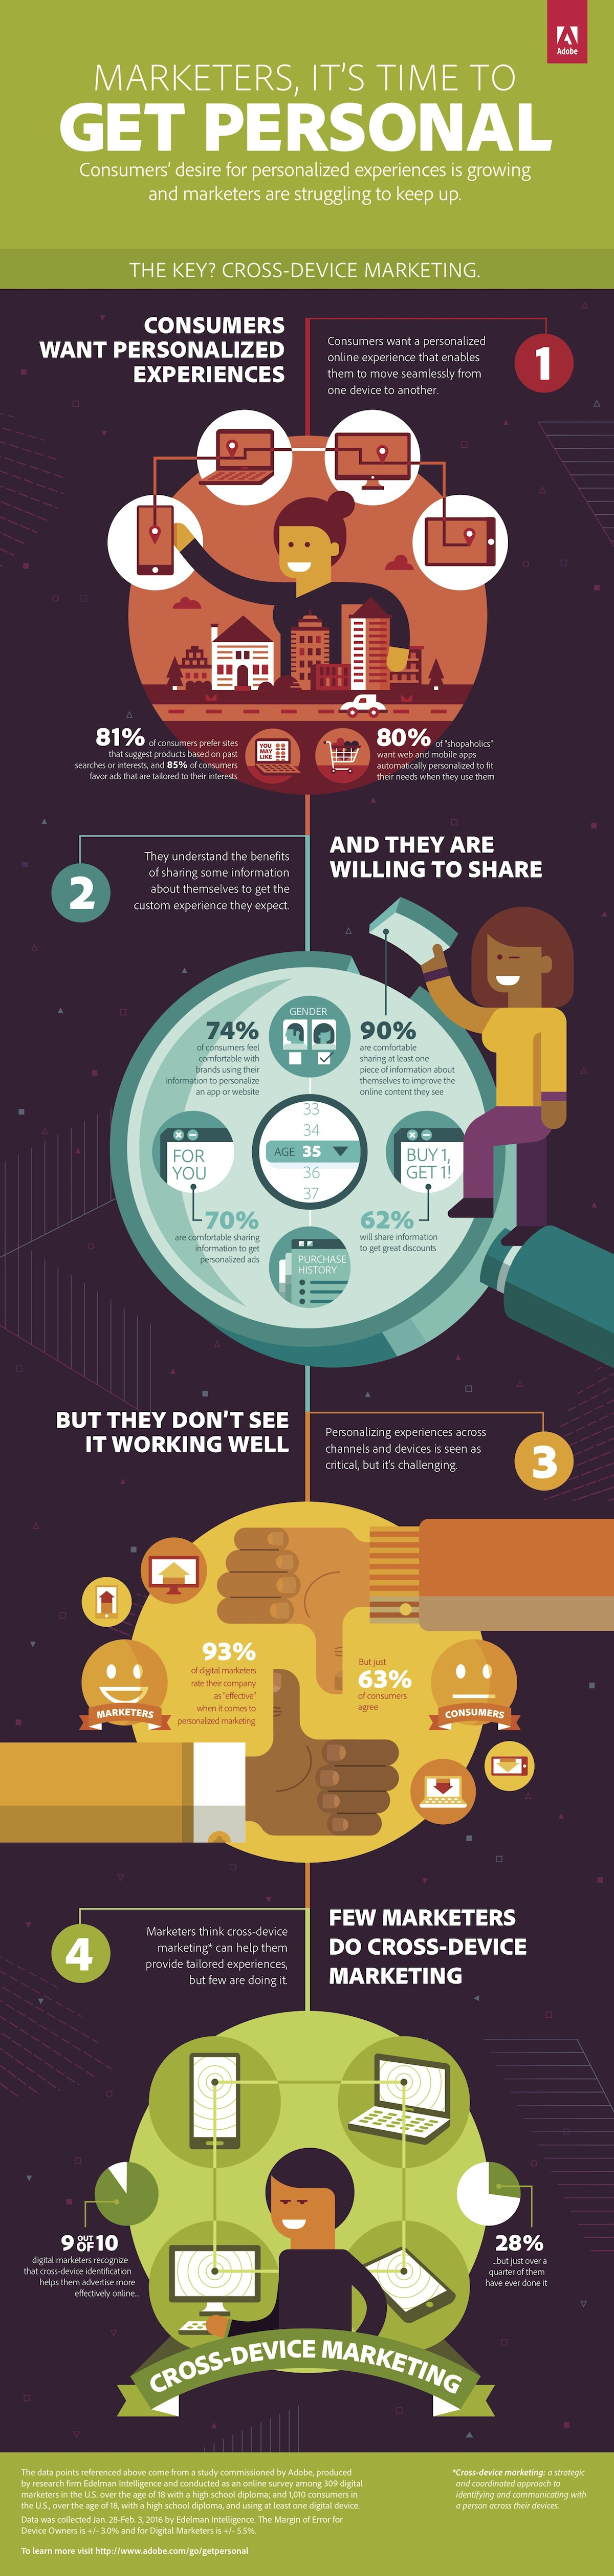 Adobe-Get-Personal-Infographic